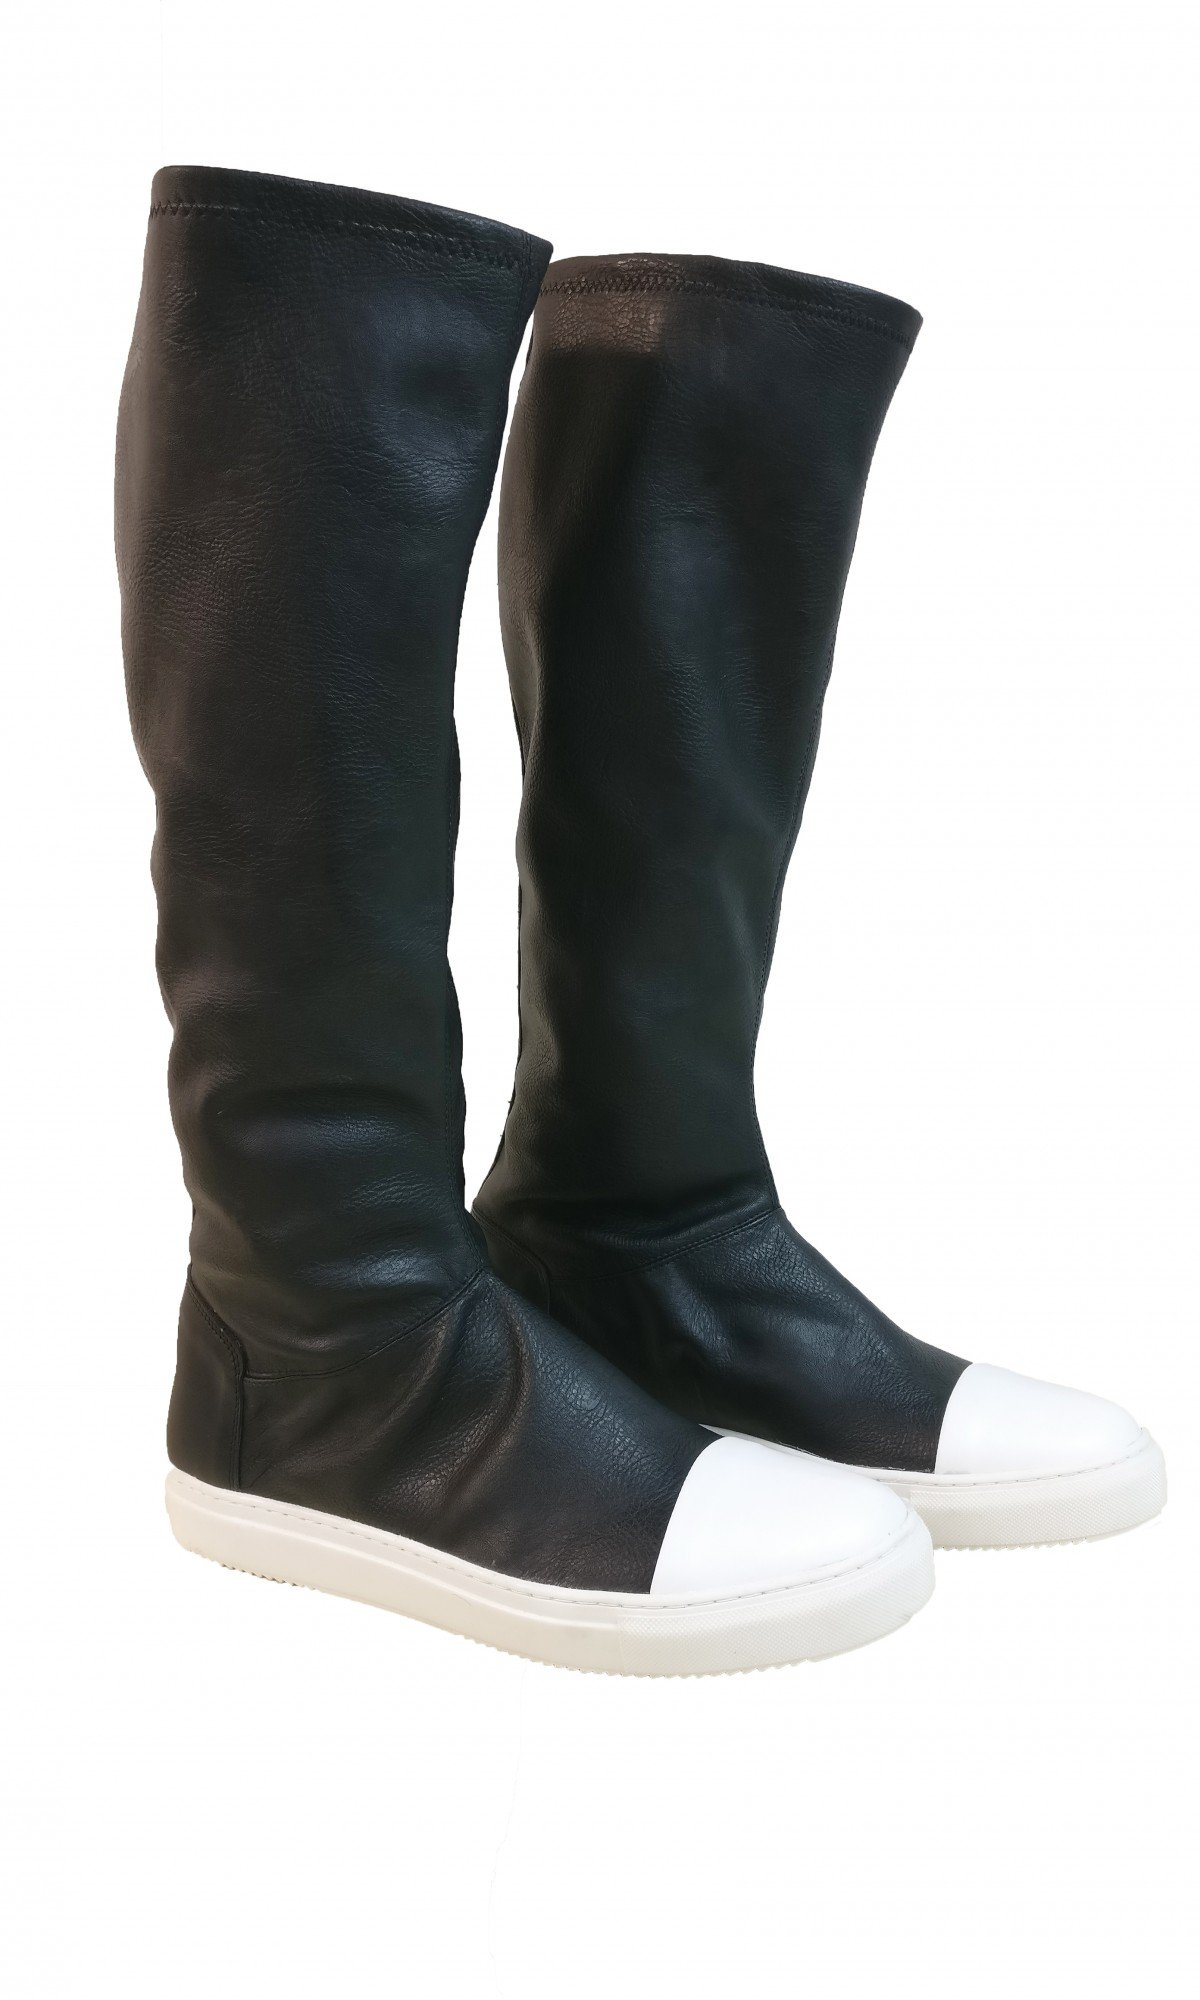 Genuine Leather High Elastic Boots A21490M